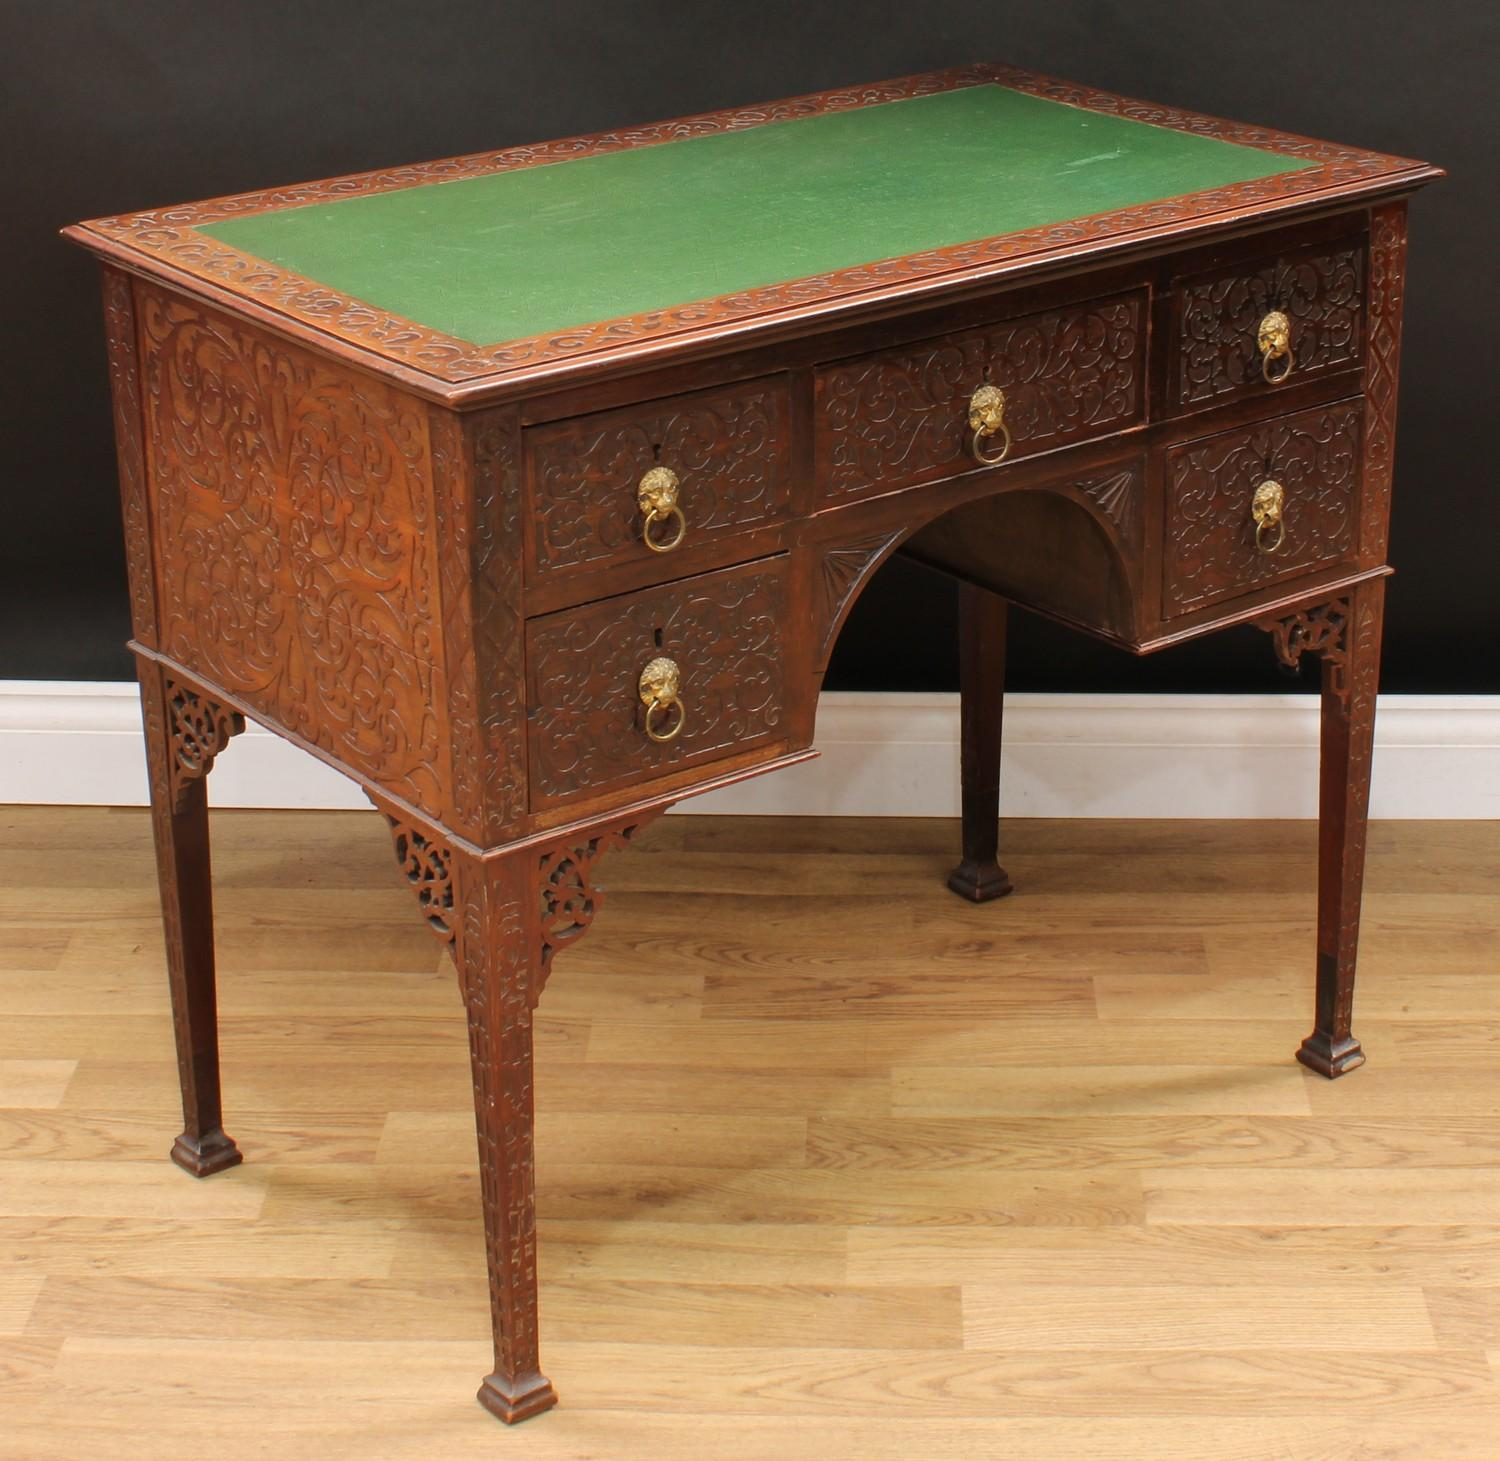 A Chinese Chippendale Revival room centre writing table, rectangular top with inset writing surface, - Image 2 of 4